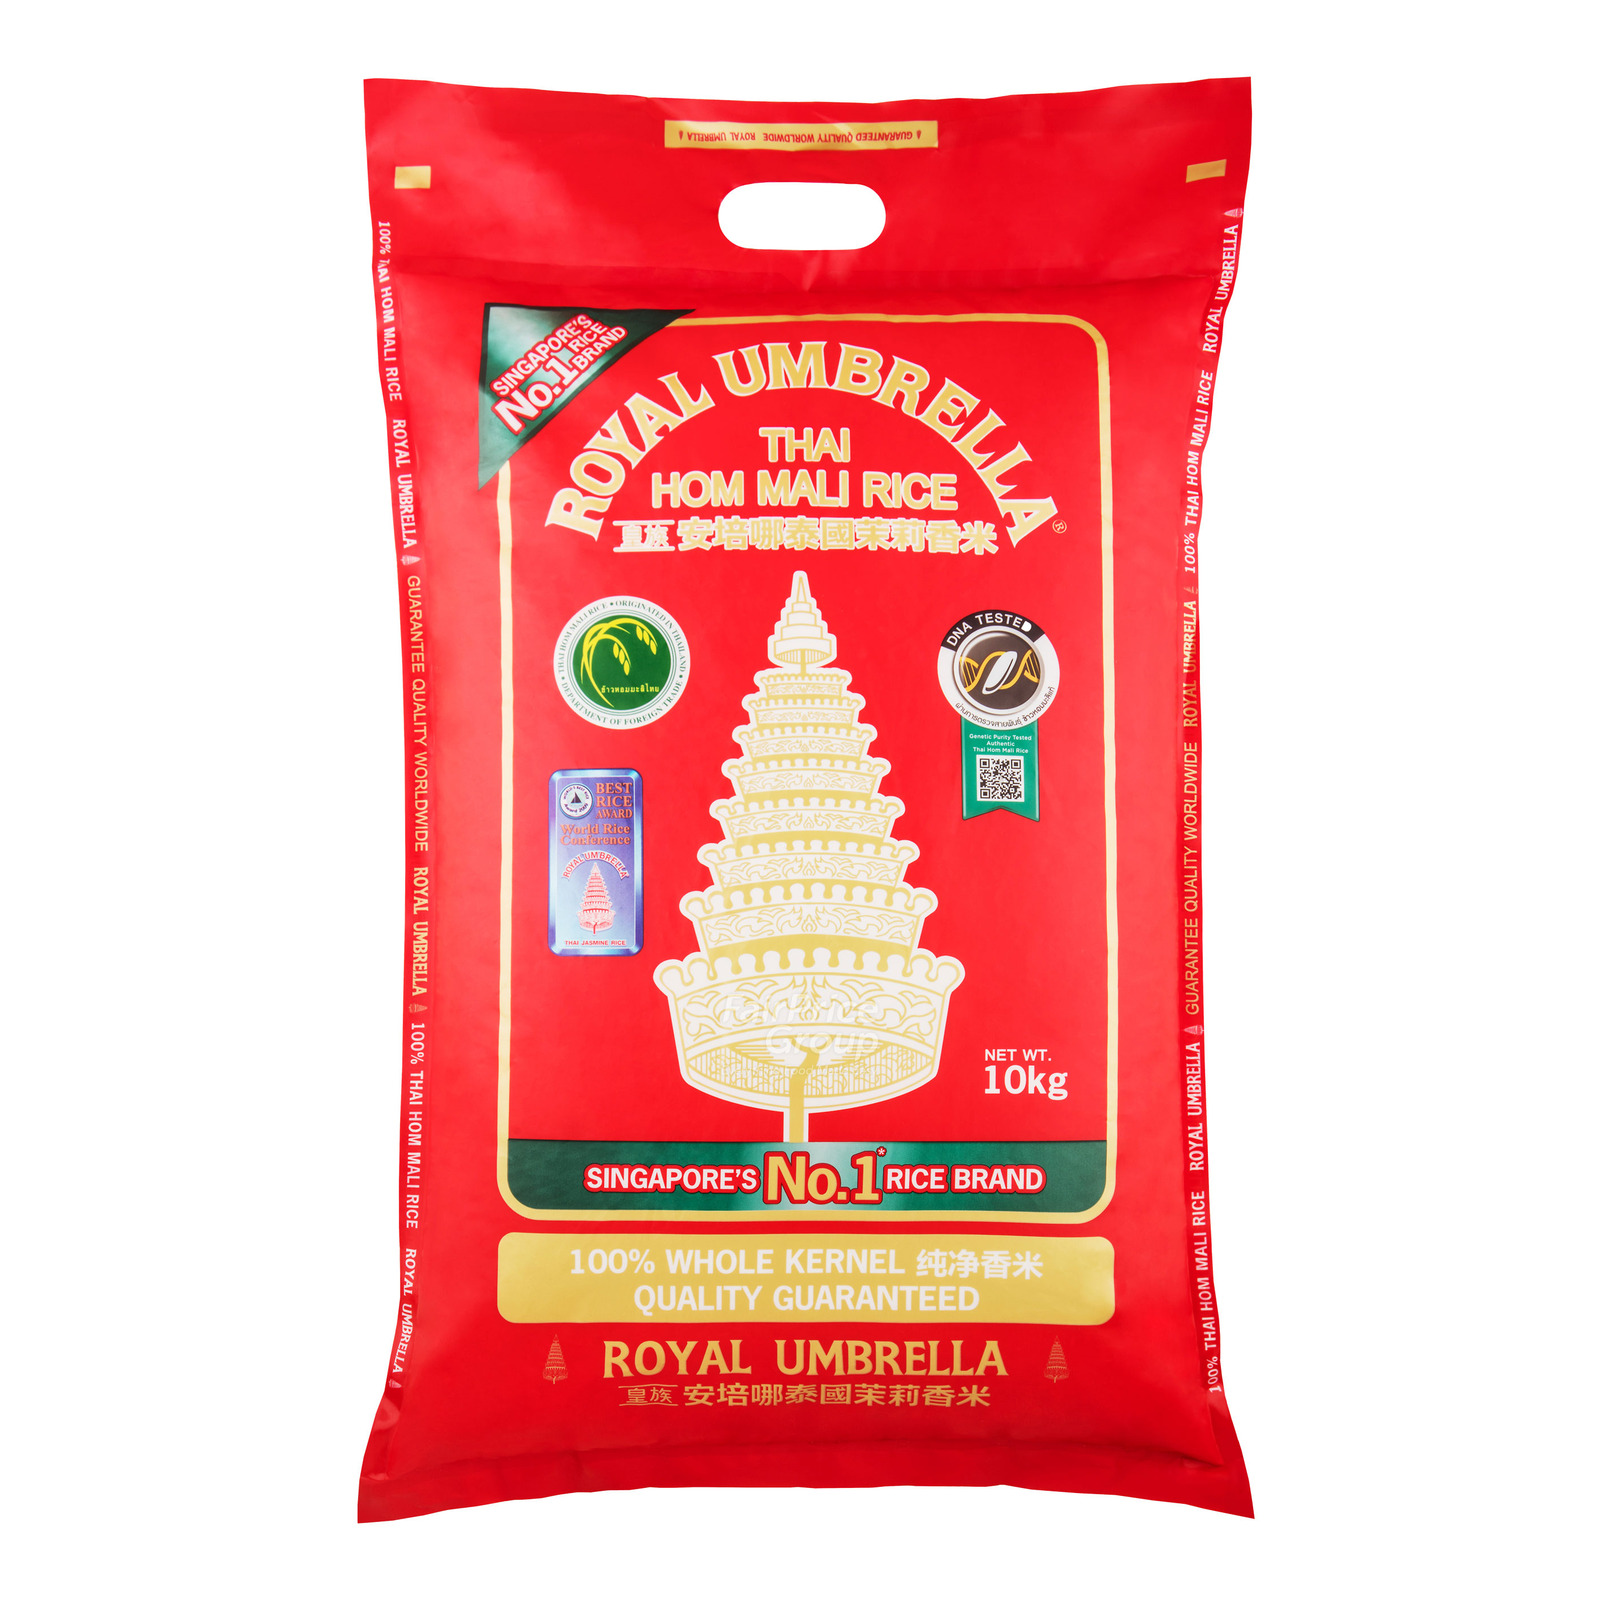 ROYAL UMBRELLA Thai Hom Mali Fragrant Rice 10kg